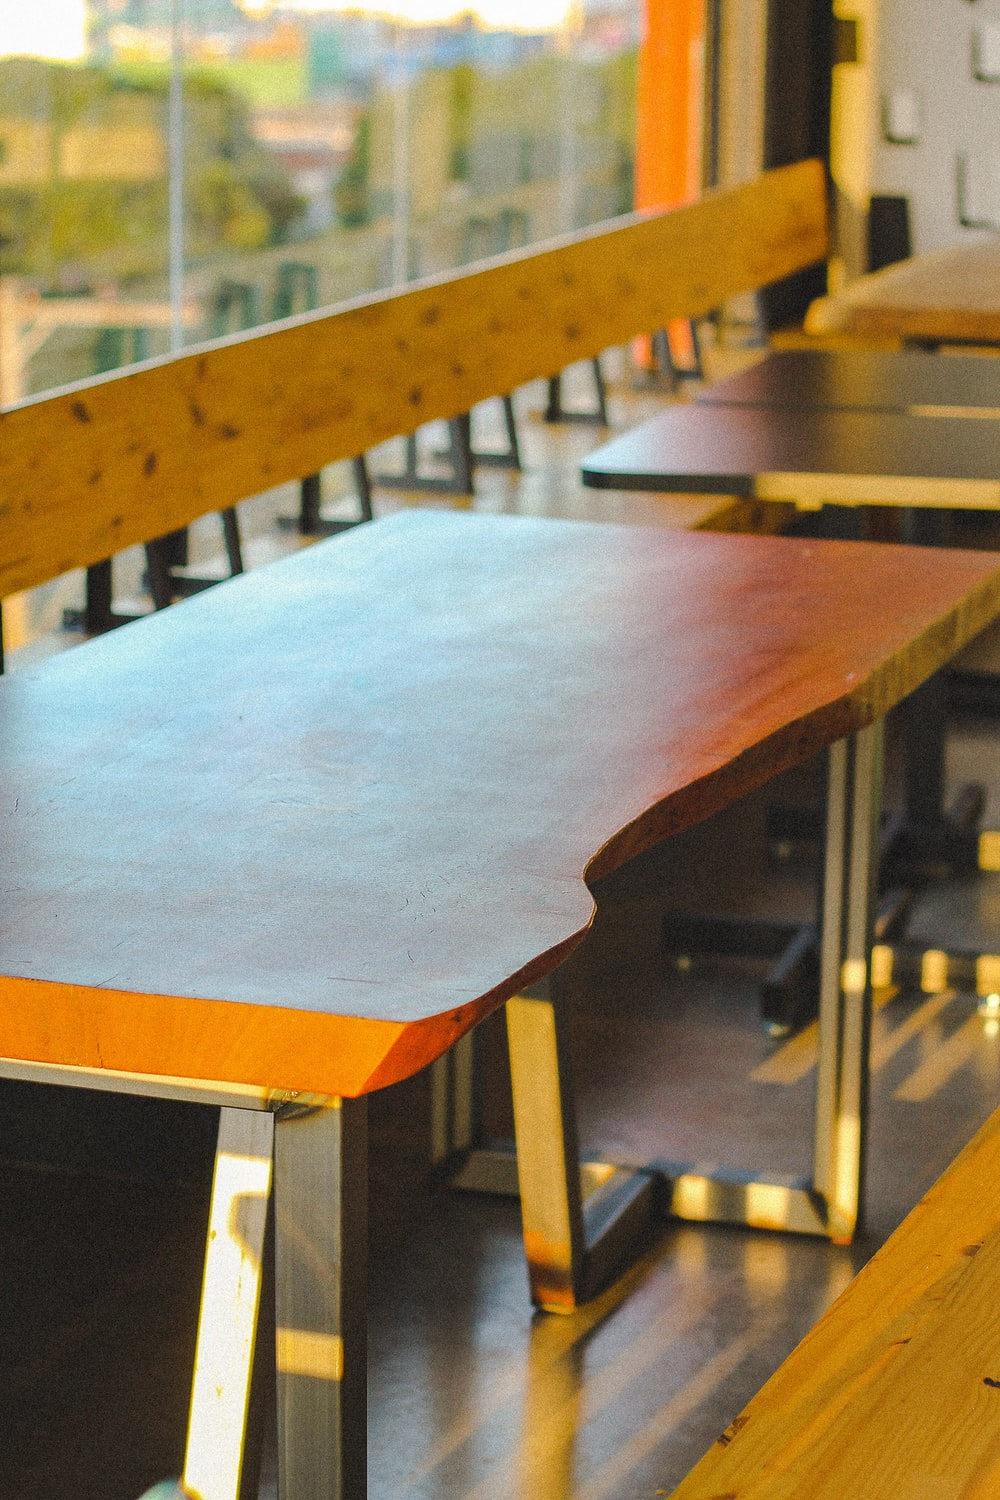 blue wooden table with chairs